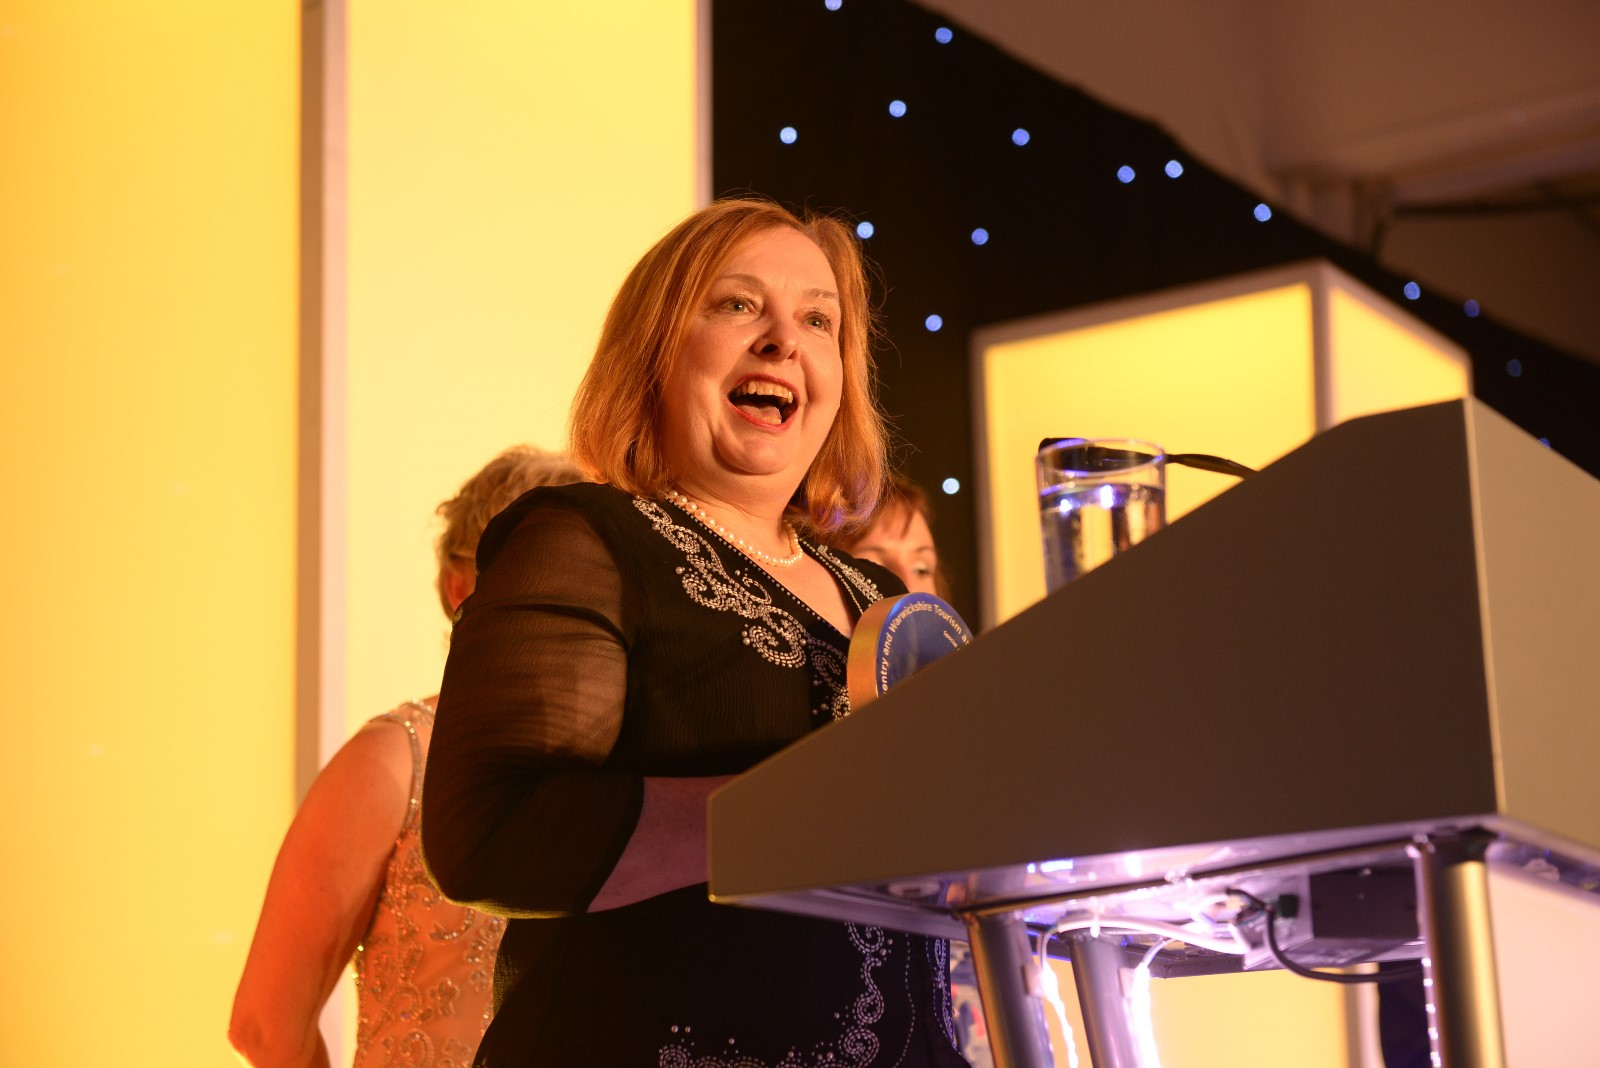 Cllr Heather Timms accepts the award at the Coventry and Warwickshire tourism and culture awards.